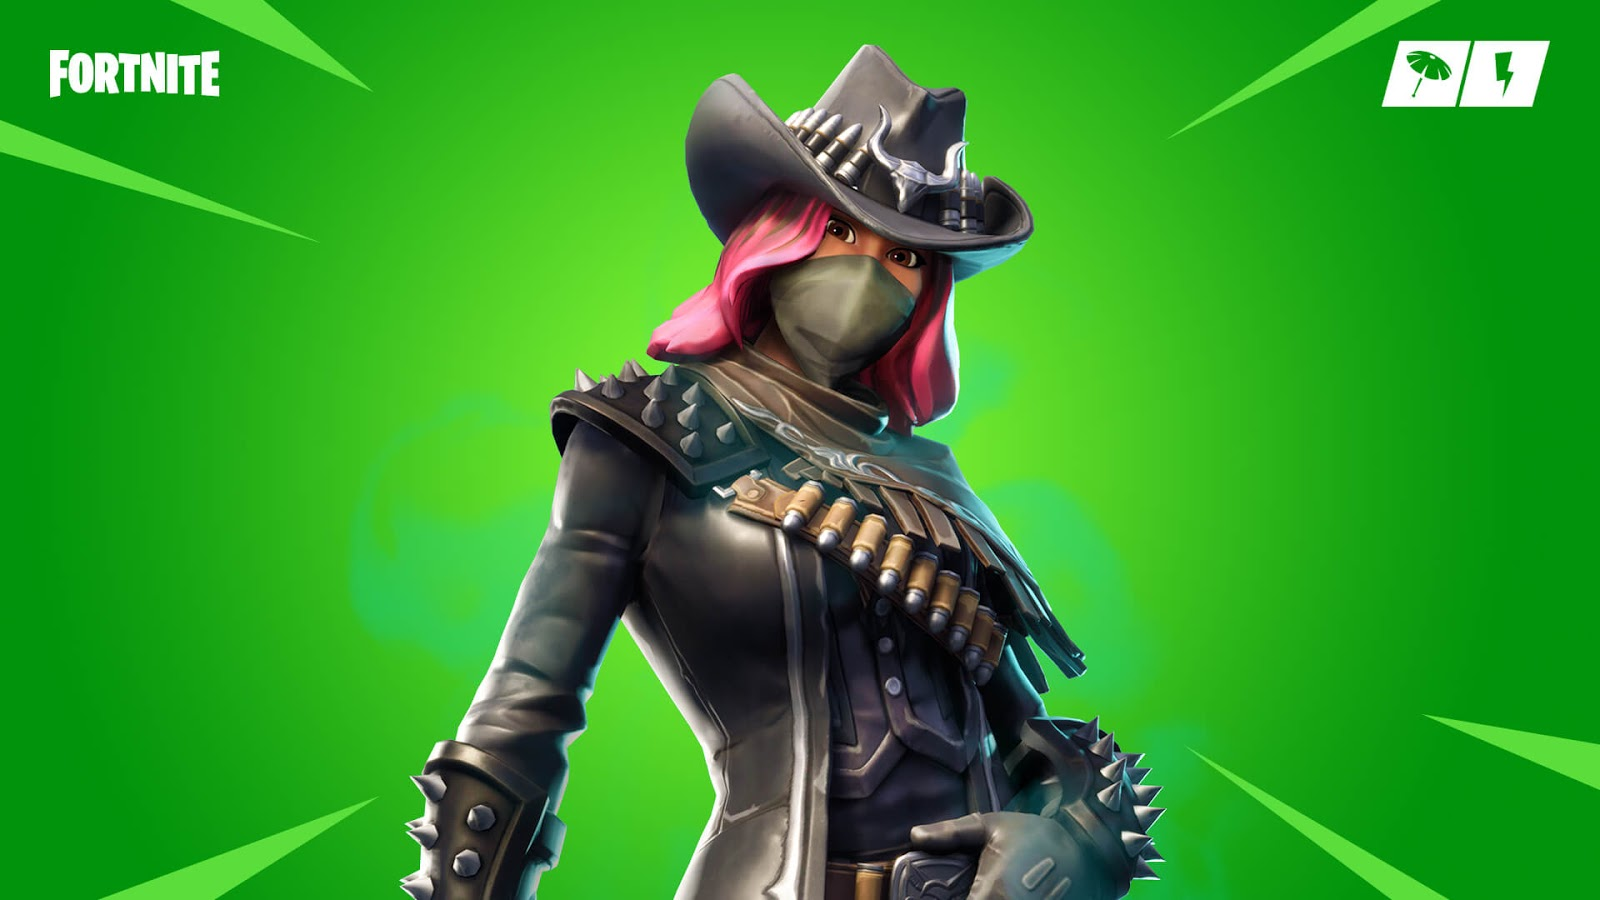 Fortnite Patch Notes 6.20: Fortnitemares Event, New Six Shooter, And More